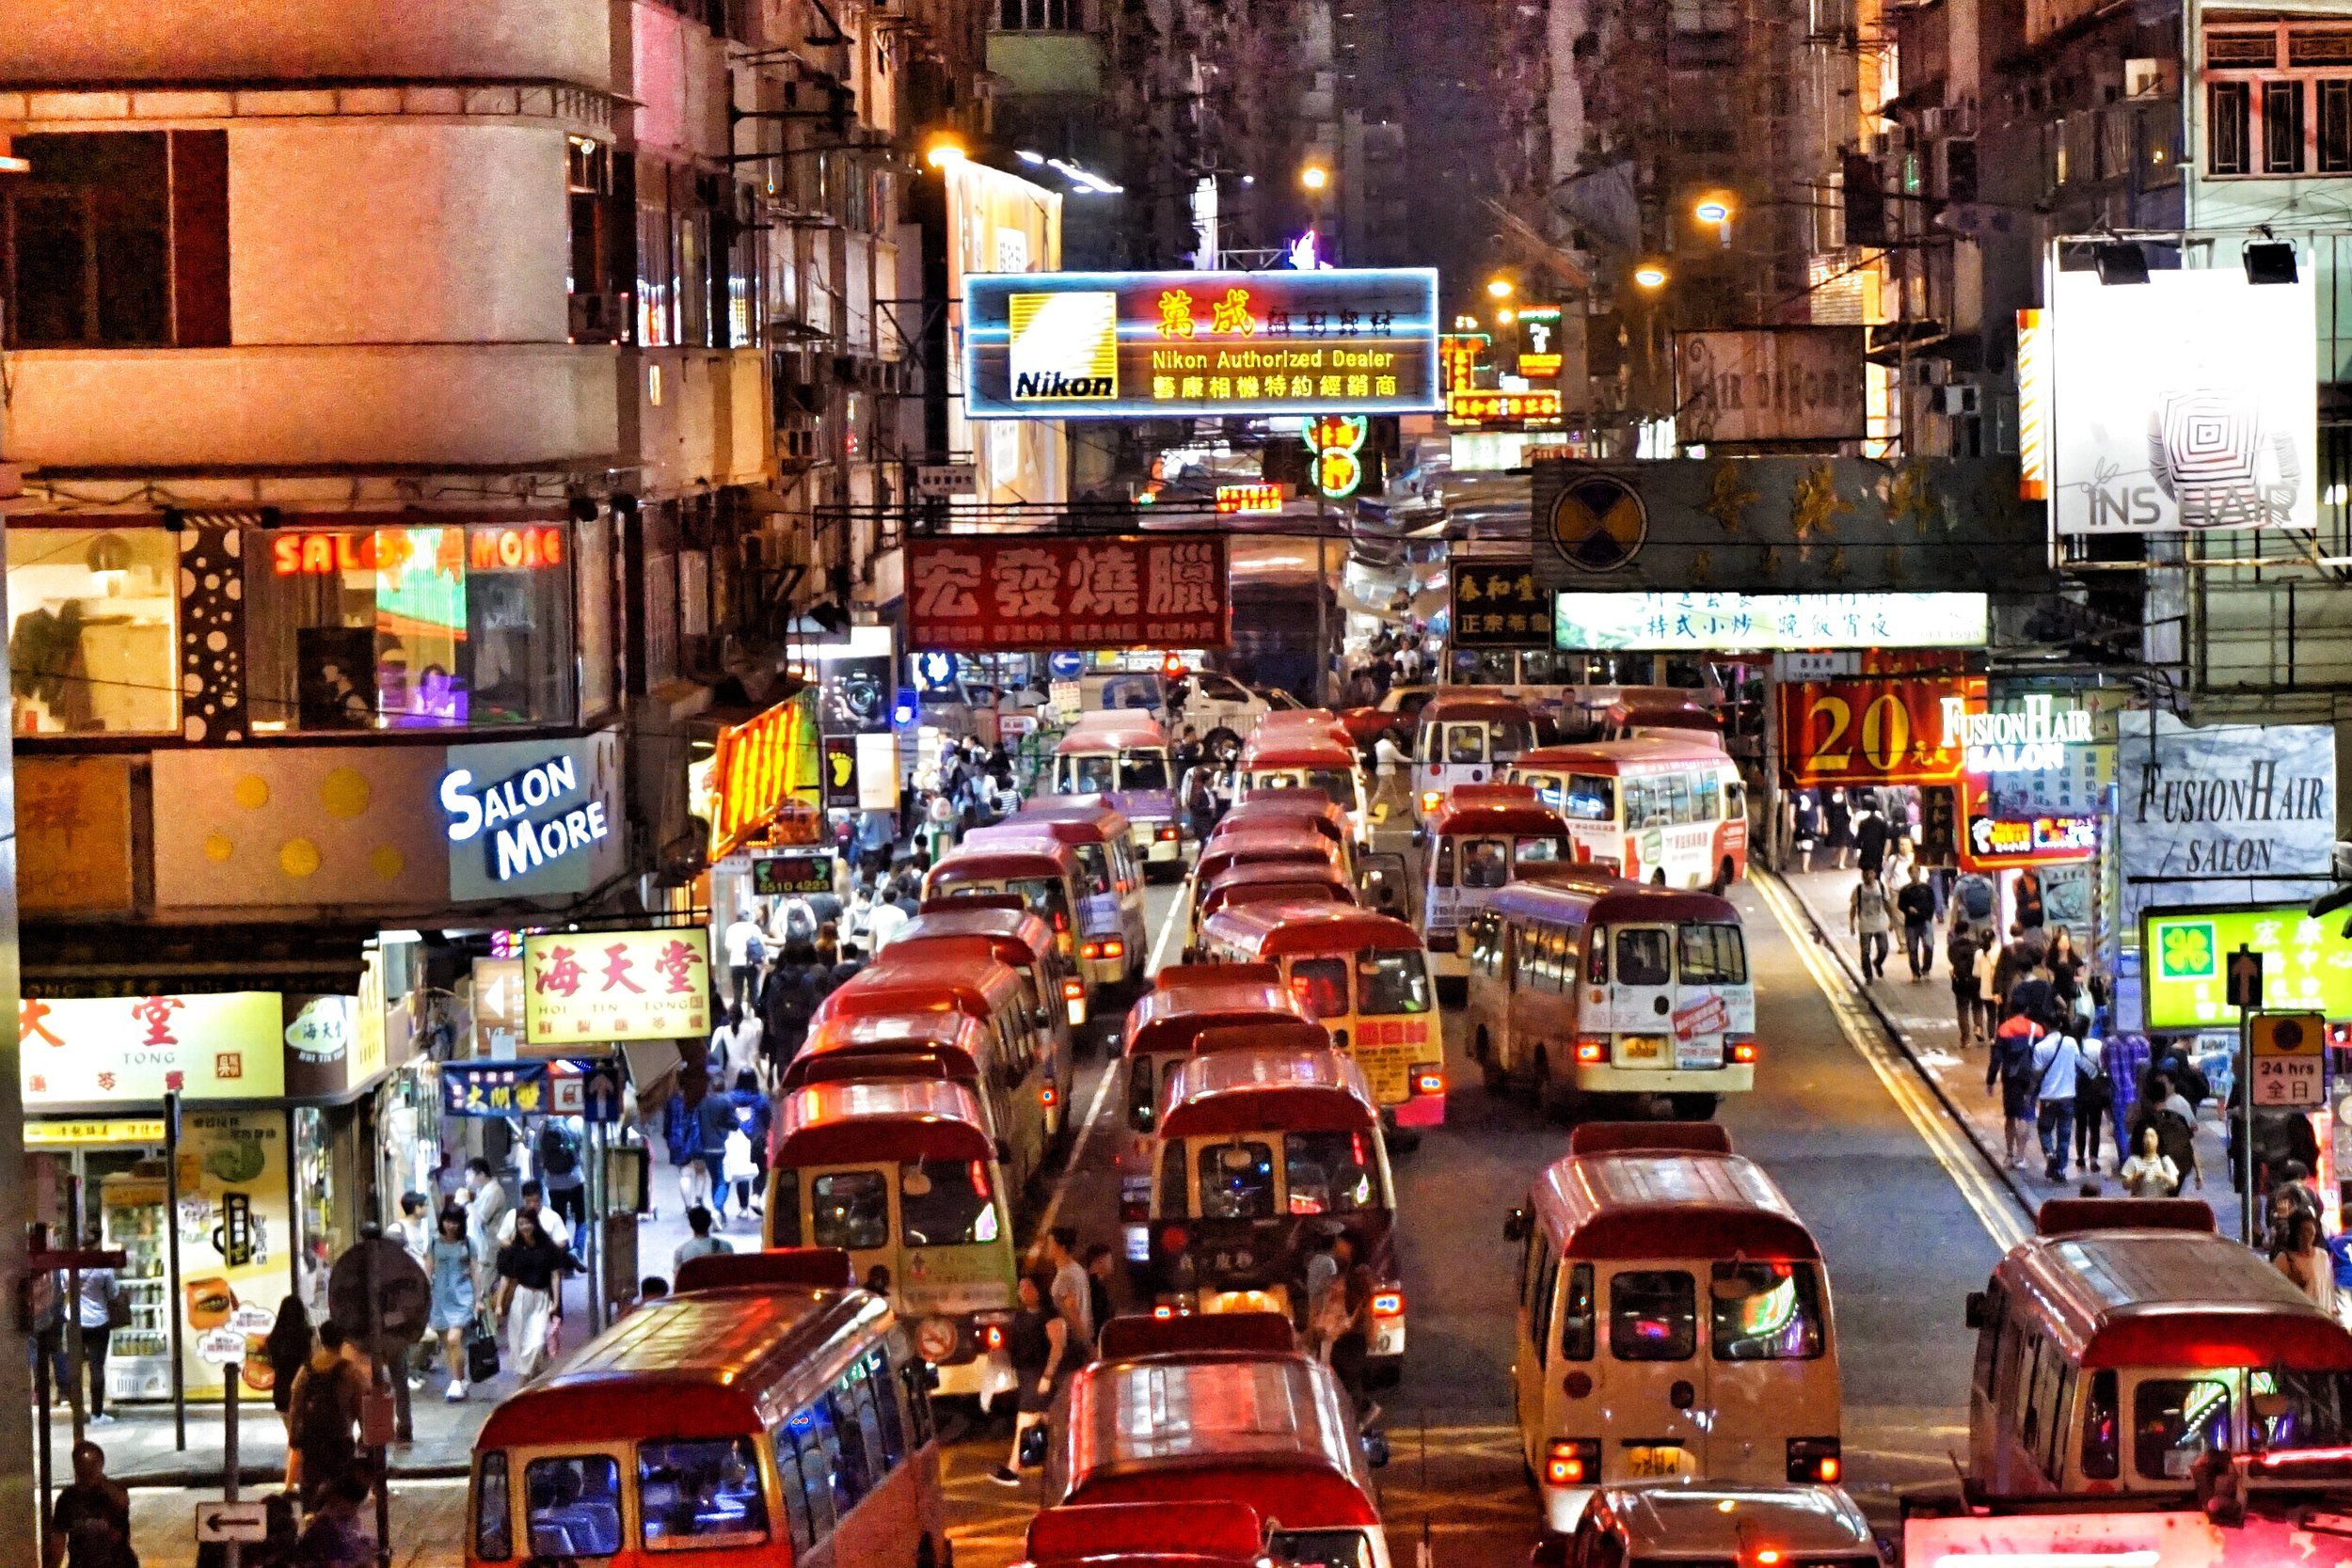 Walk through the streets of Mong Kok on your personalised night tour of kowloon and soak up the atmosphere of the neon lights.